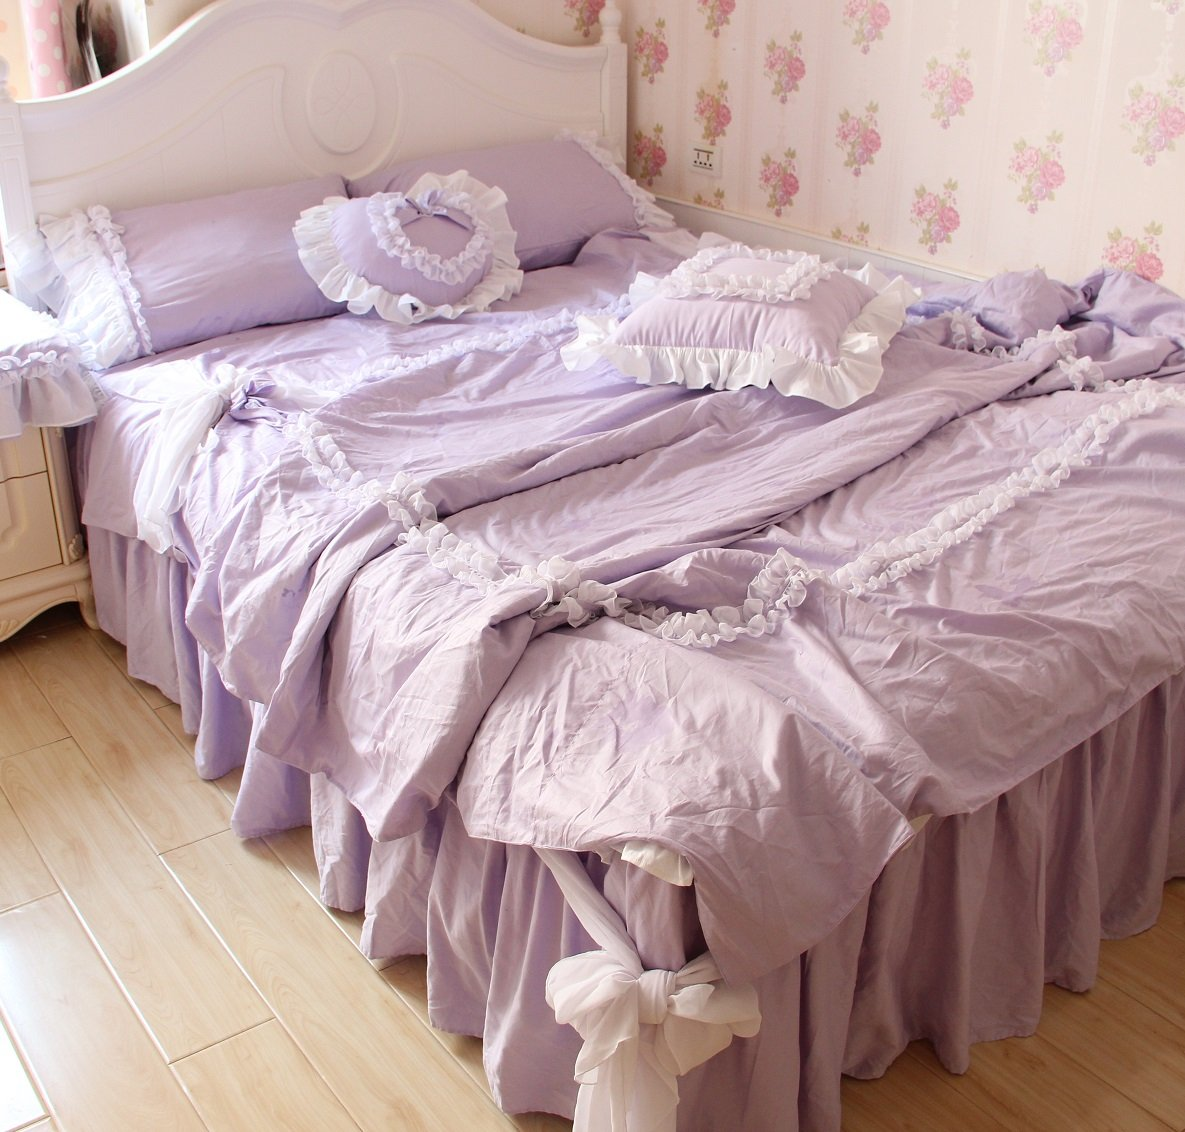 FADFAY Girls Lilac Purple Bedding Set Korean White Lace Ruffle Duvet Cover Bedding Sets Queen Size 4-Piece